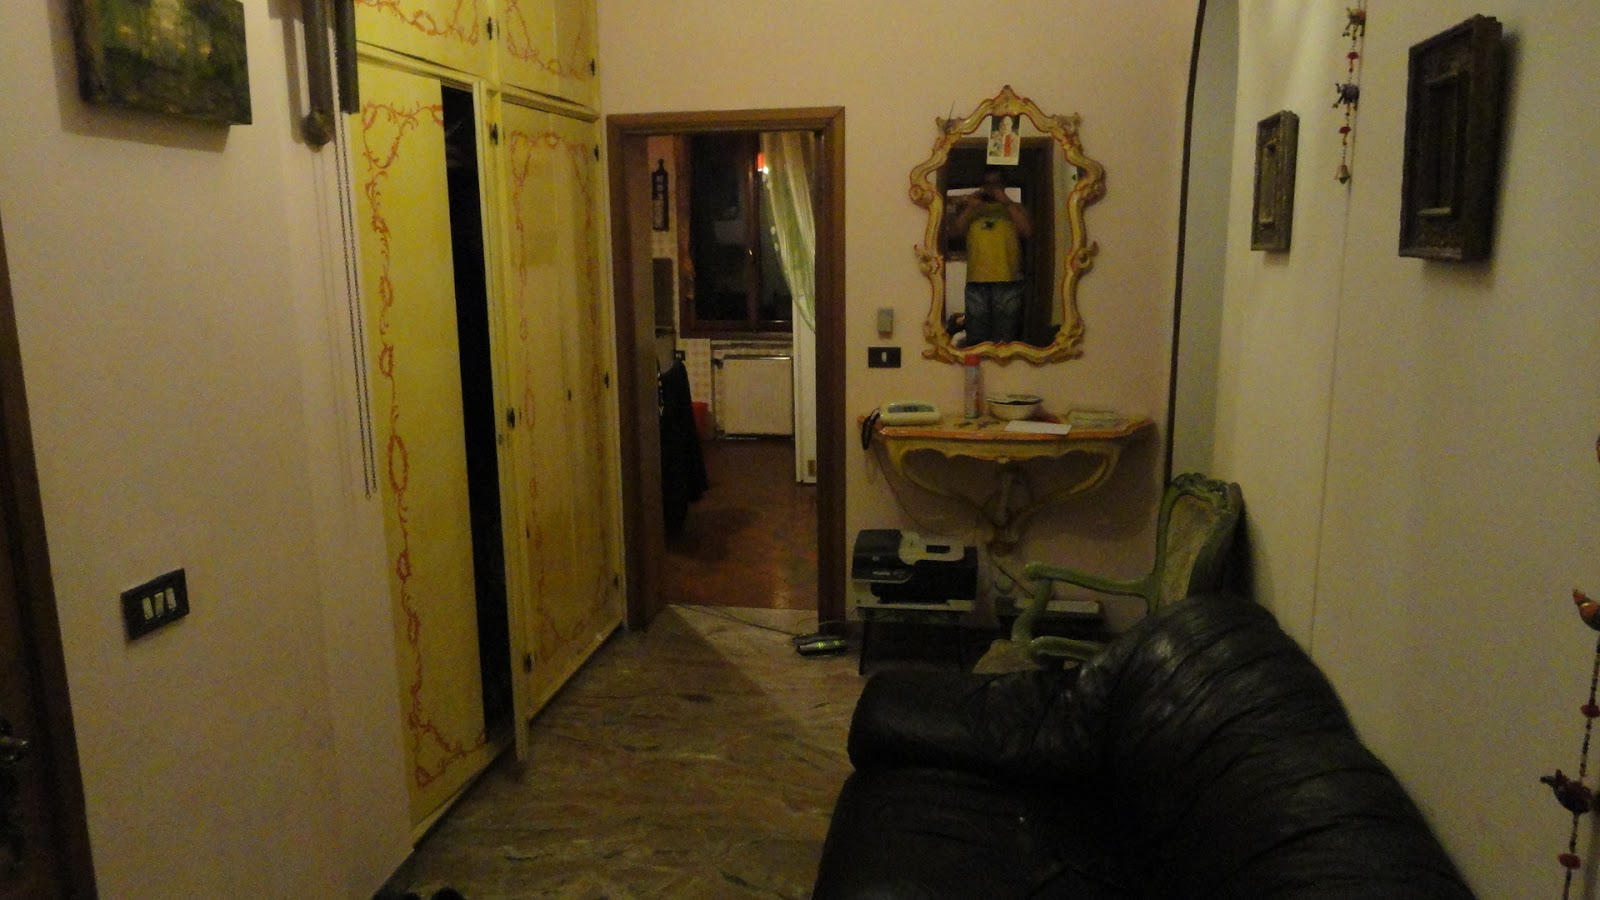 The foyer which didn't look bad. Lori walked into the bedrooms and